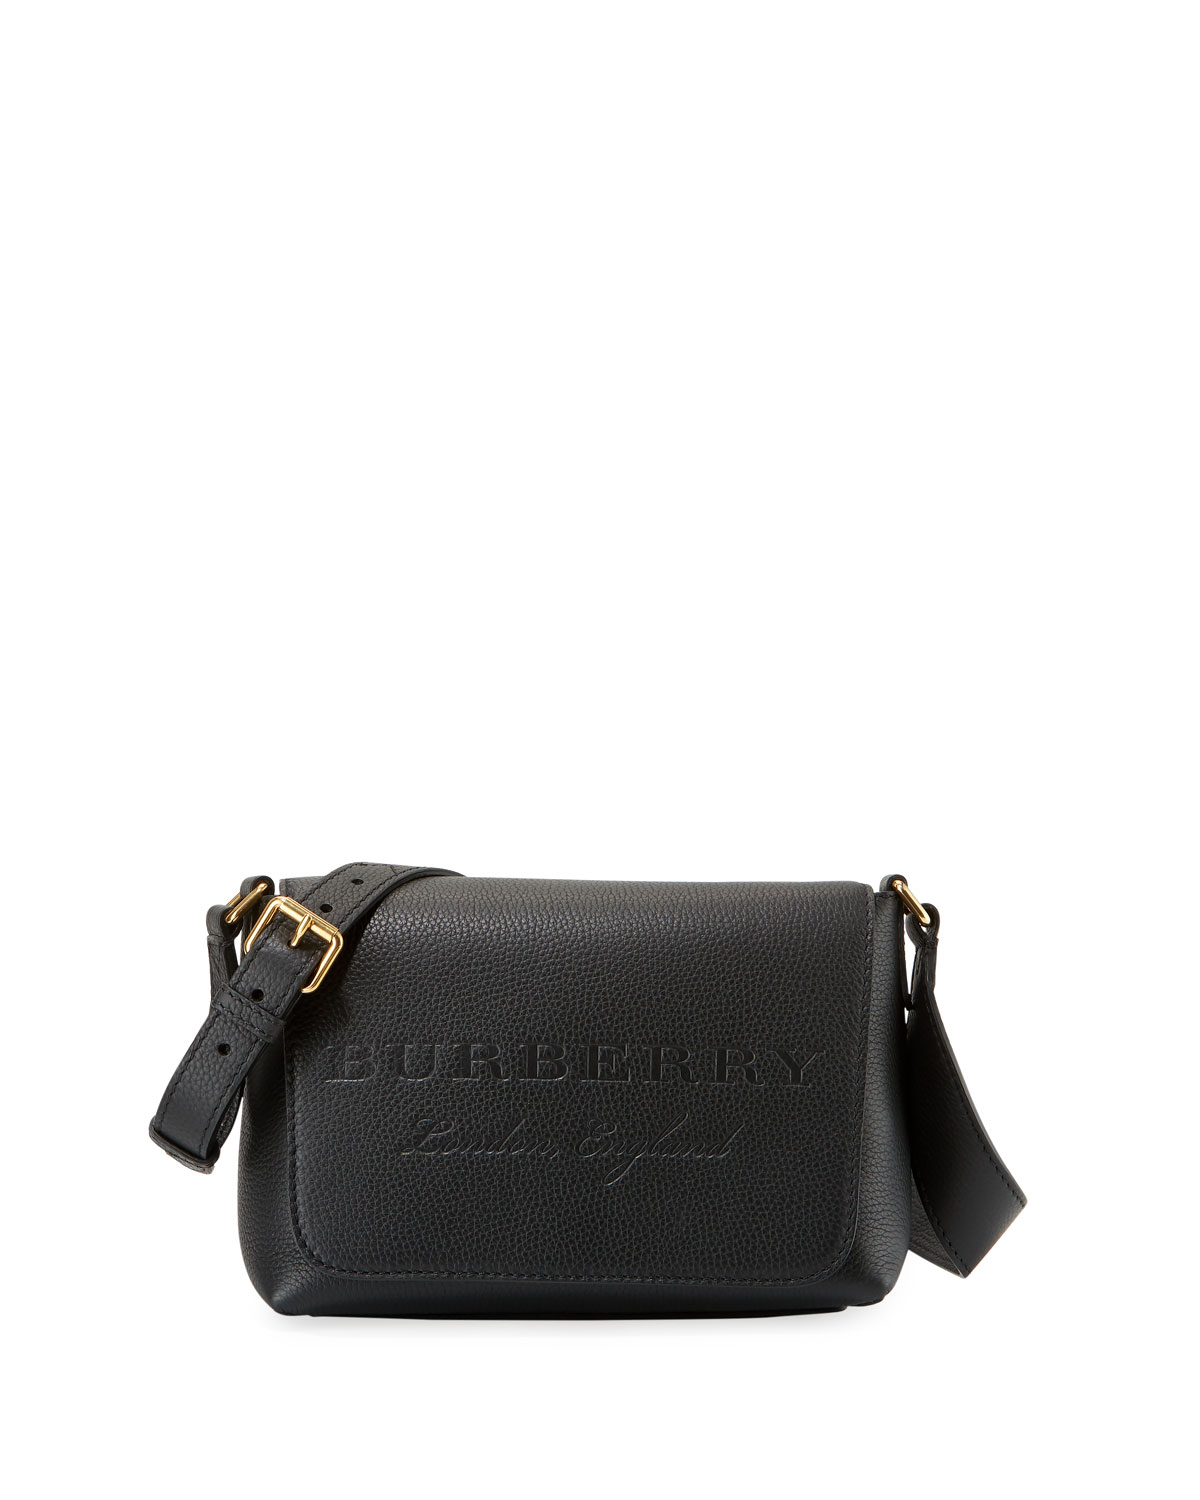 6763f69c14 Burberry Burleigh Small Soft Leather Crossbody Bag